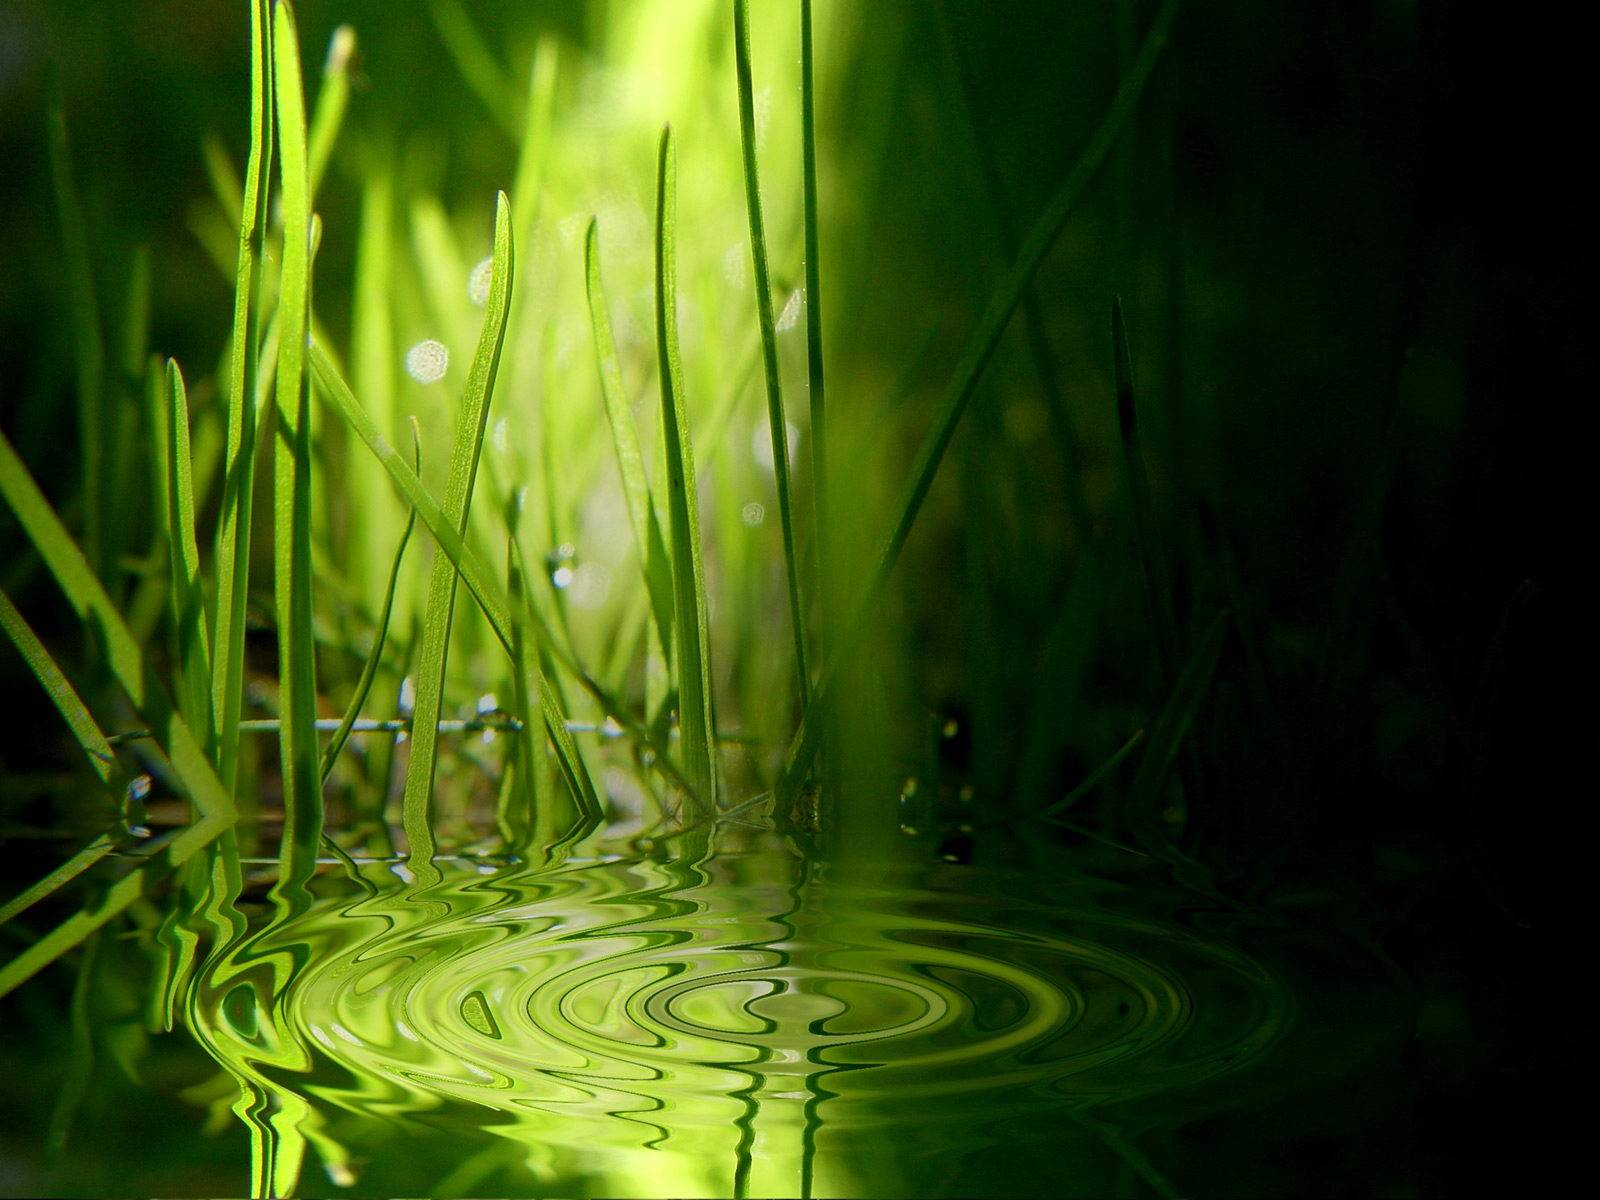 Green and Water Win 7 Wallpaper